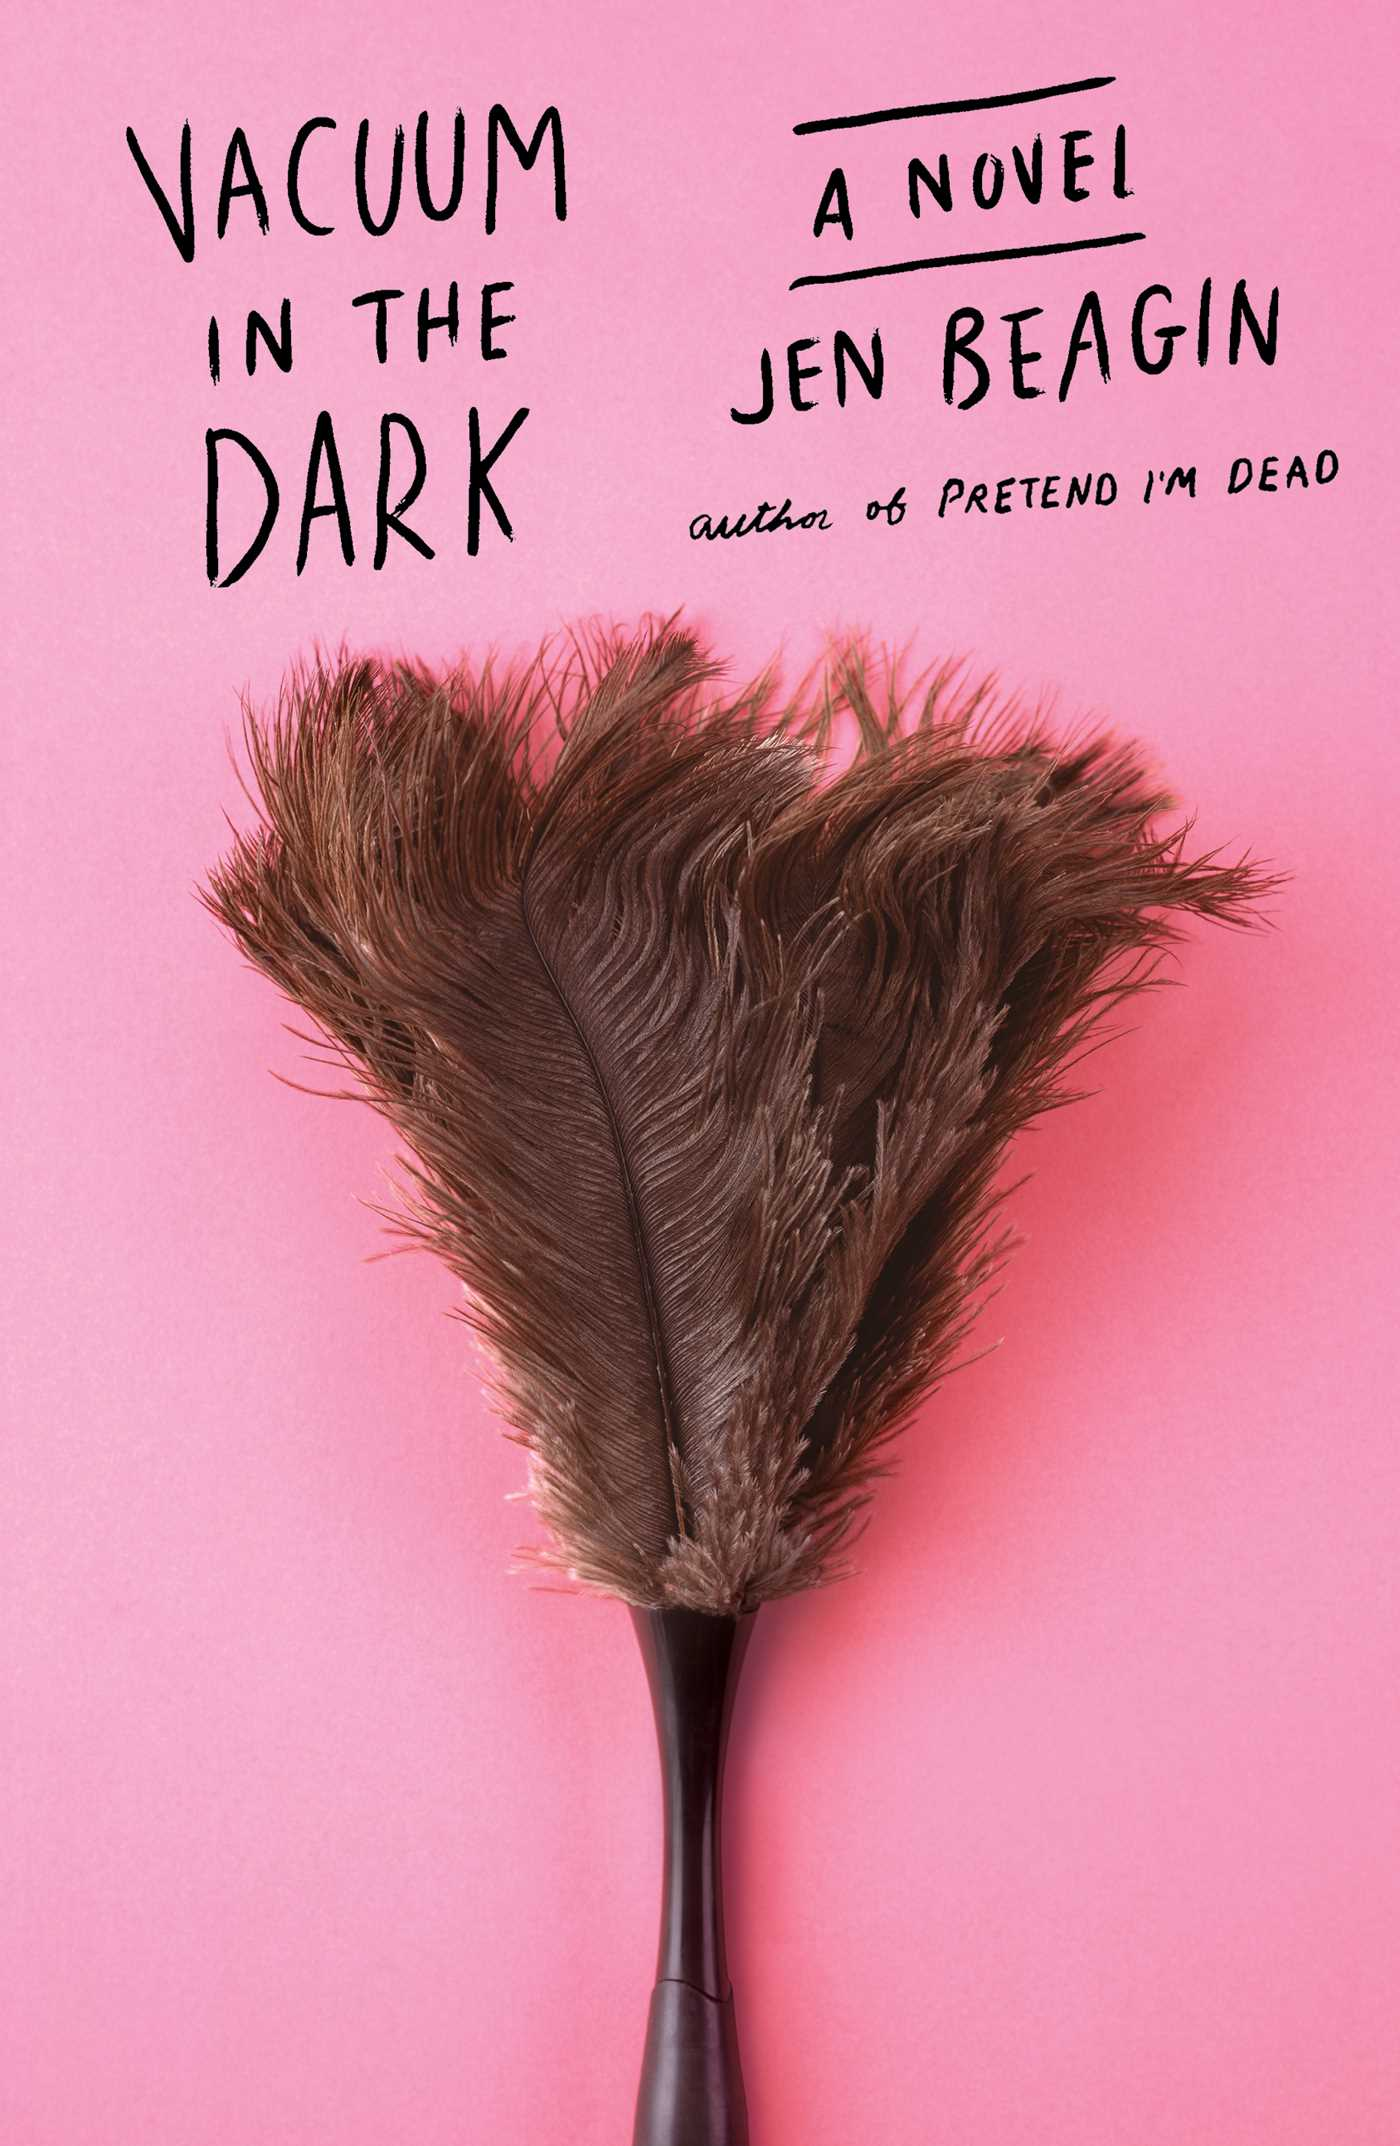 Vacuum in the Dark | Book by Jen Beagin | Official Publisher